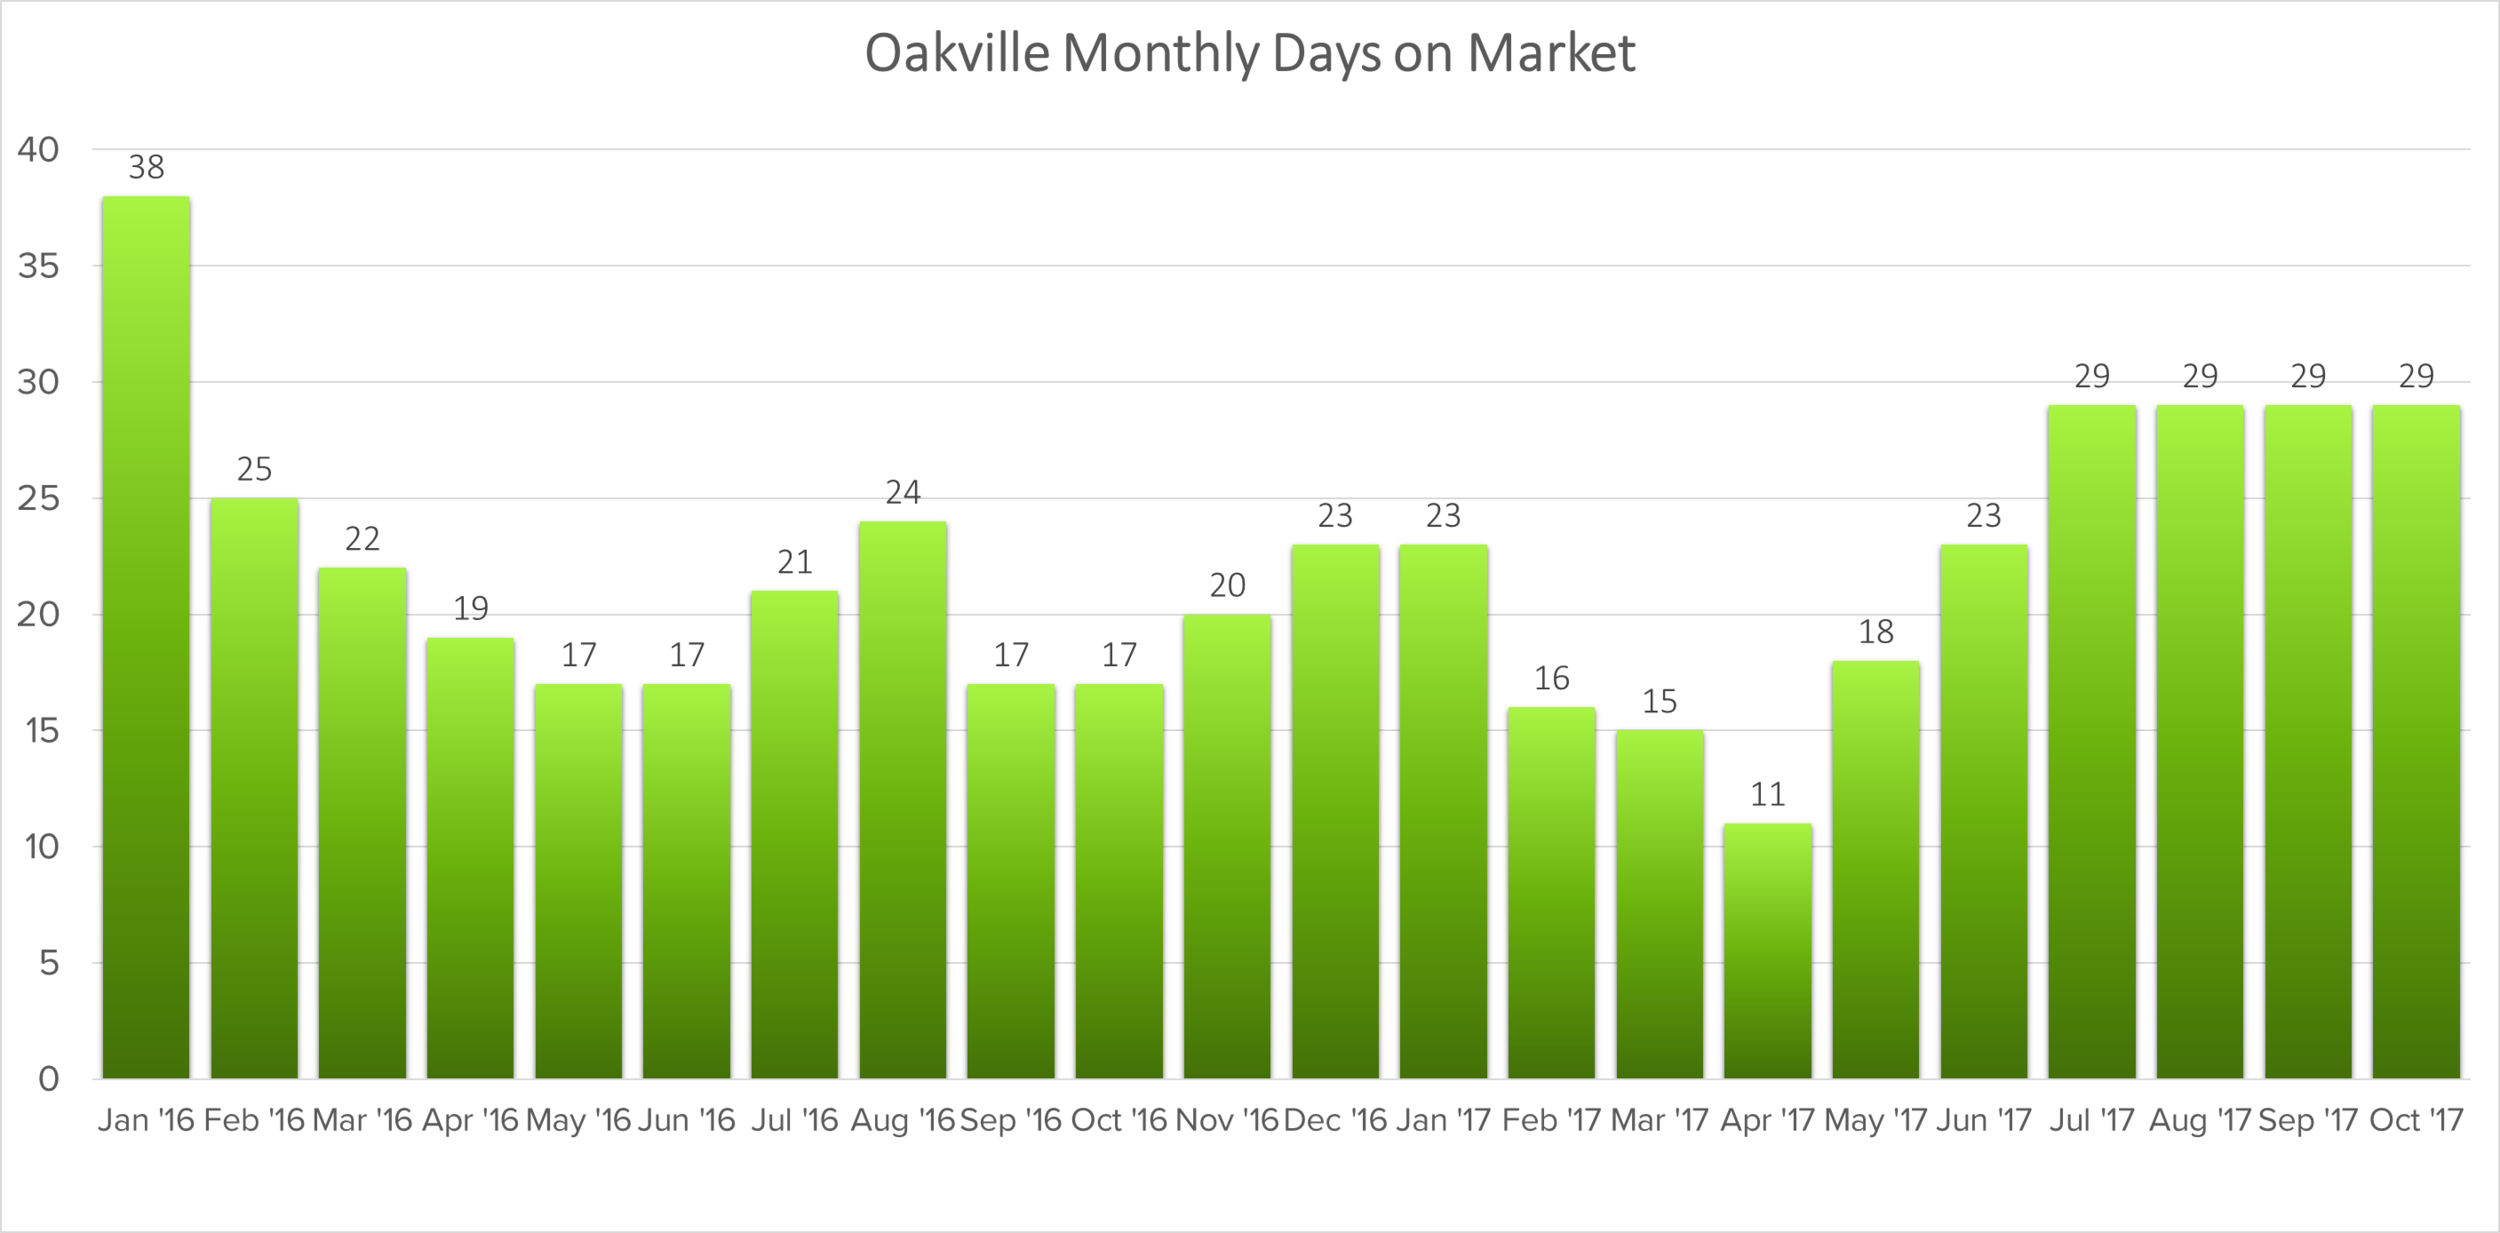 oakville days on market